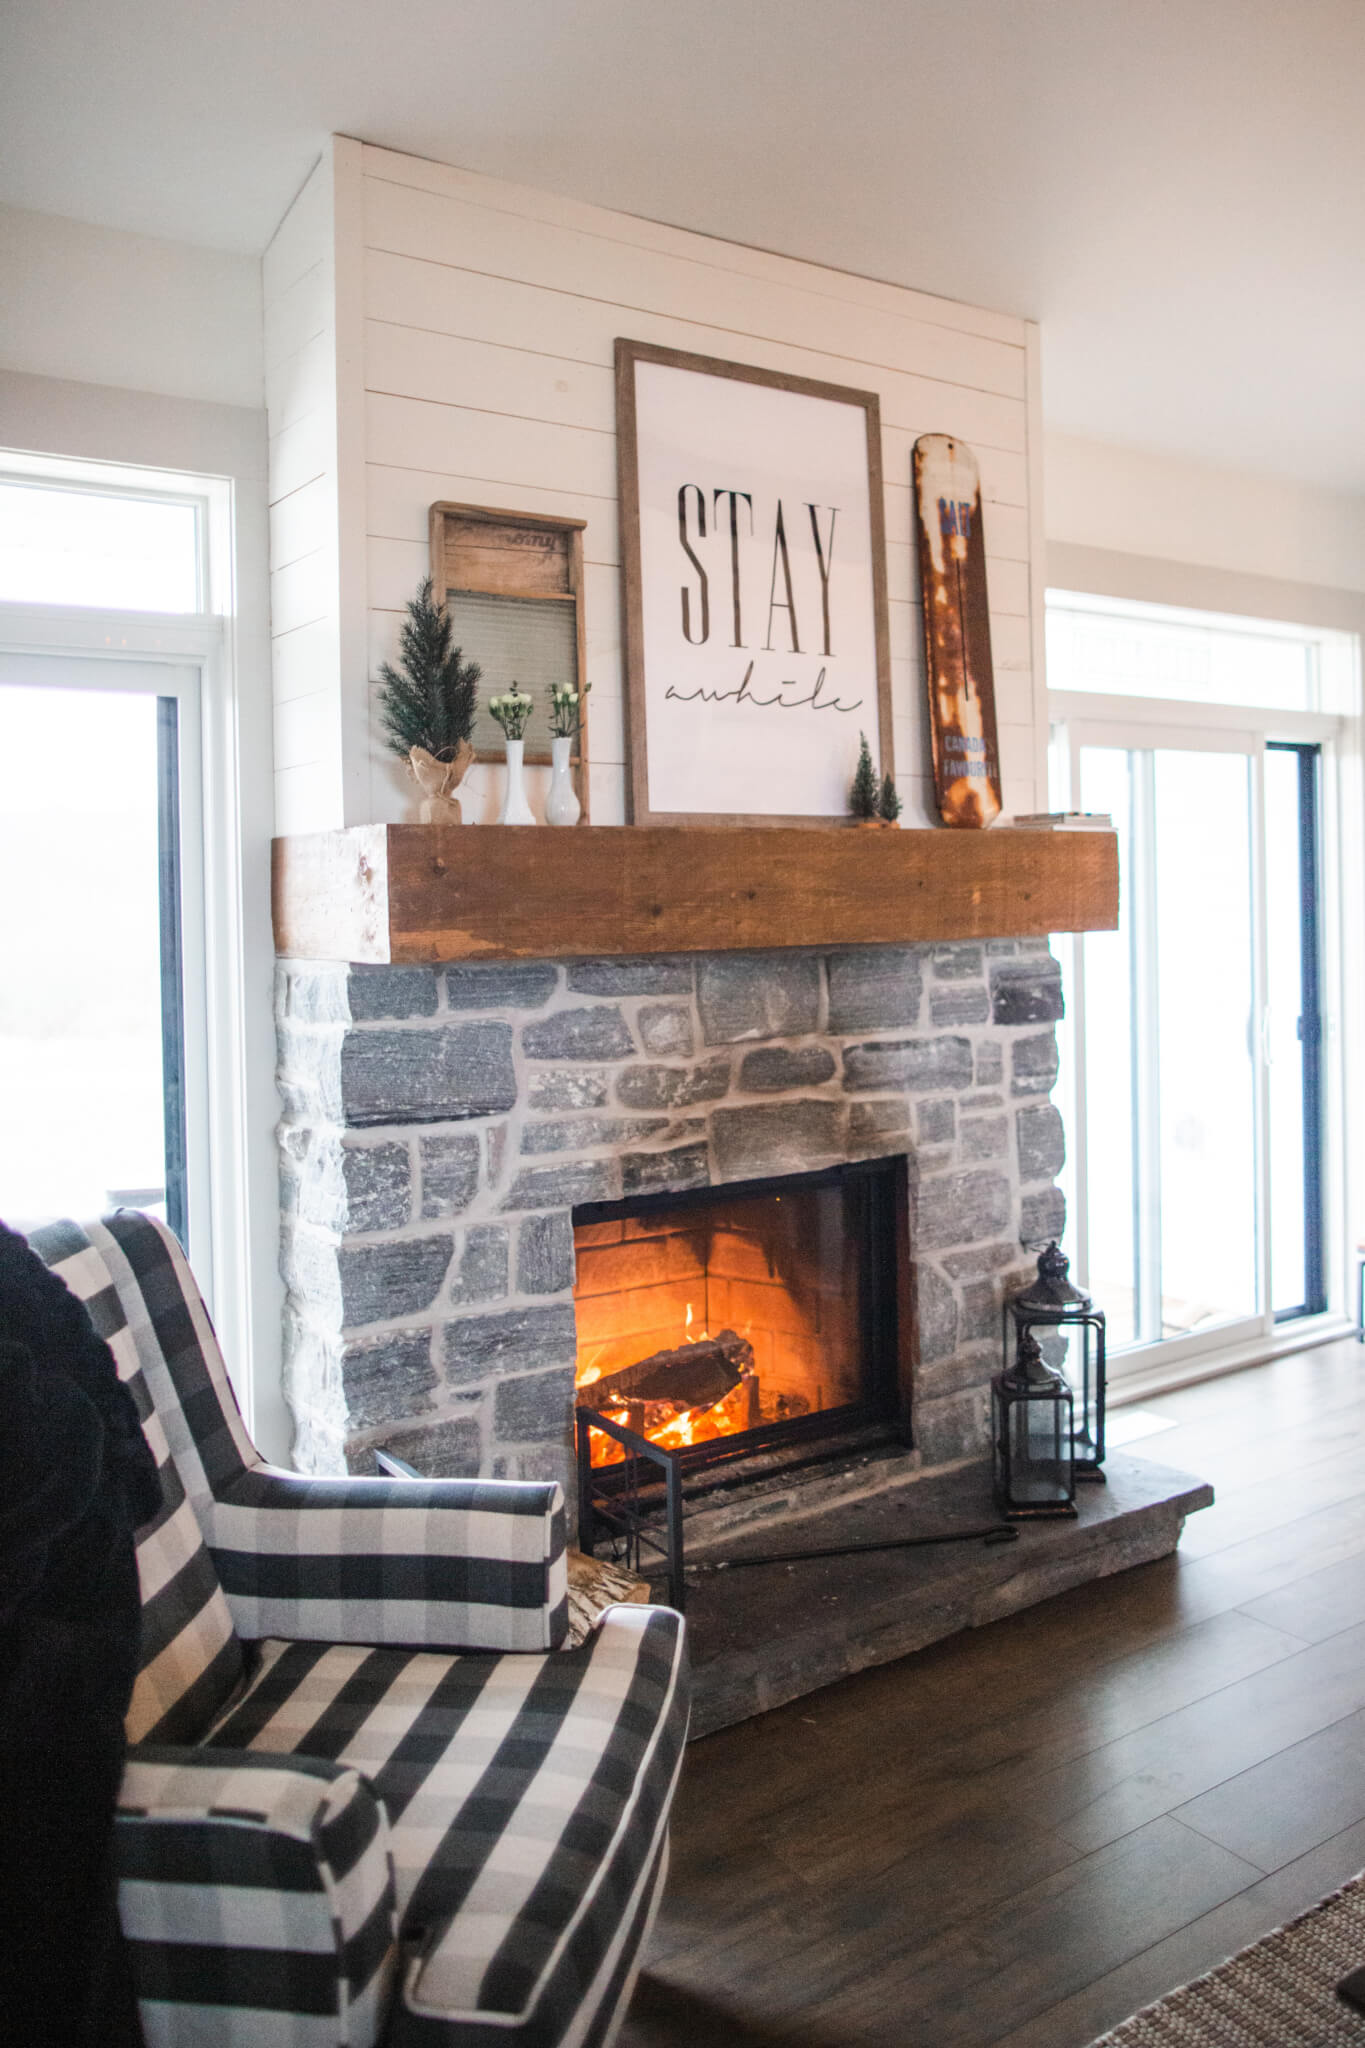 New Trends in Fireplace Design - Chimney & Masonry Outfitters